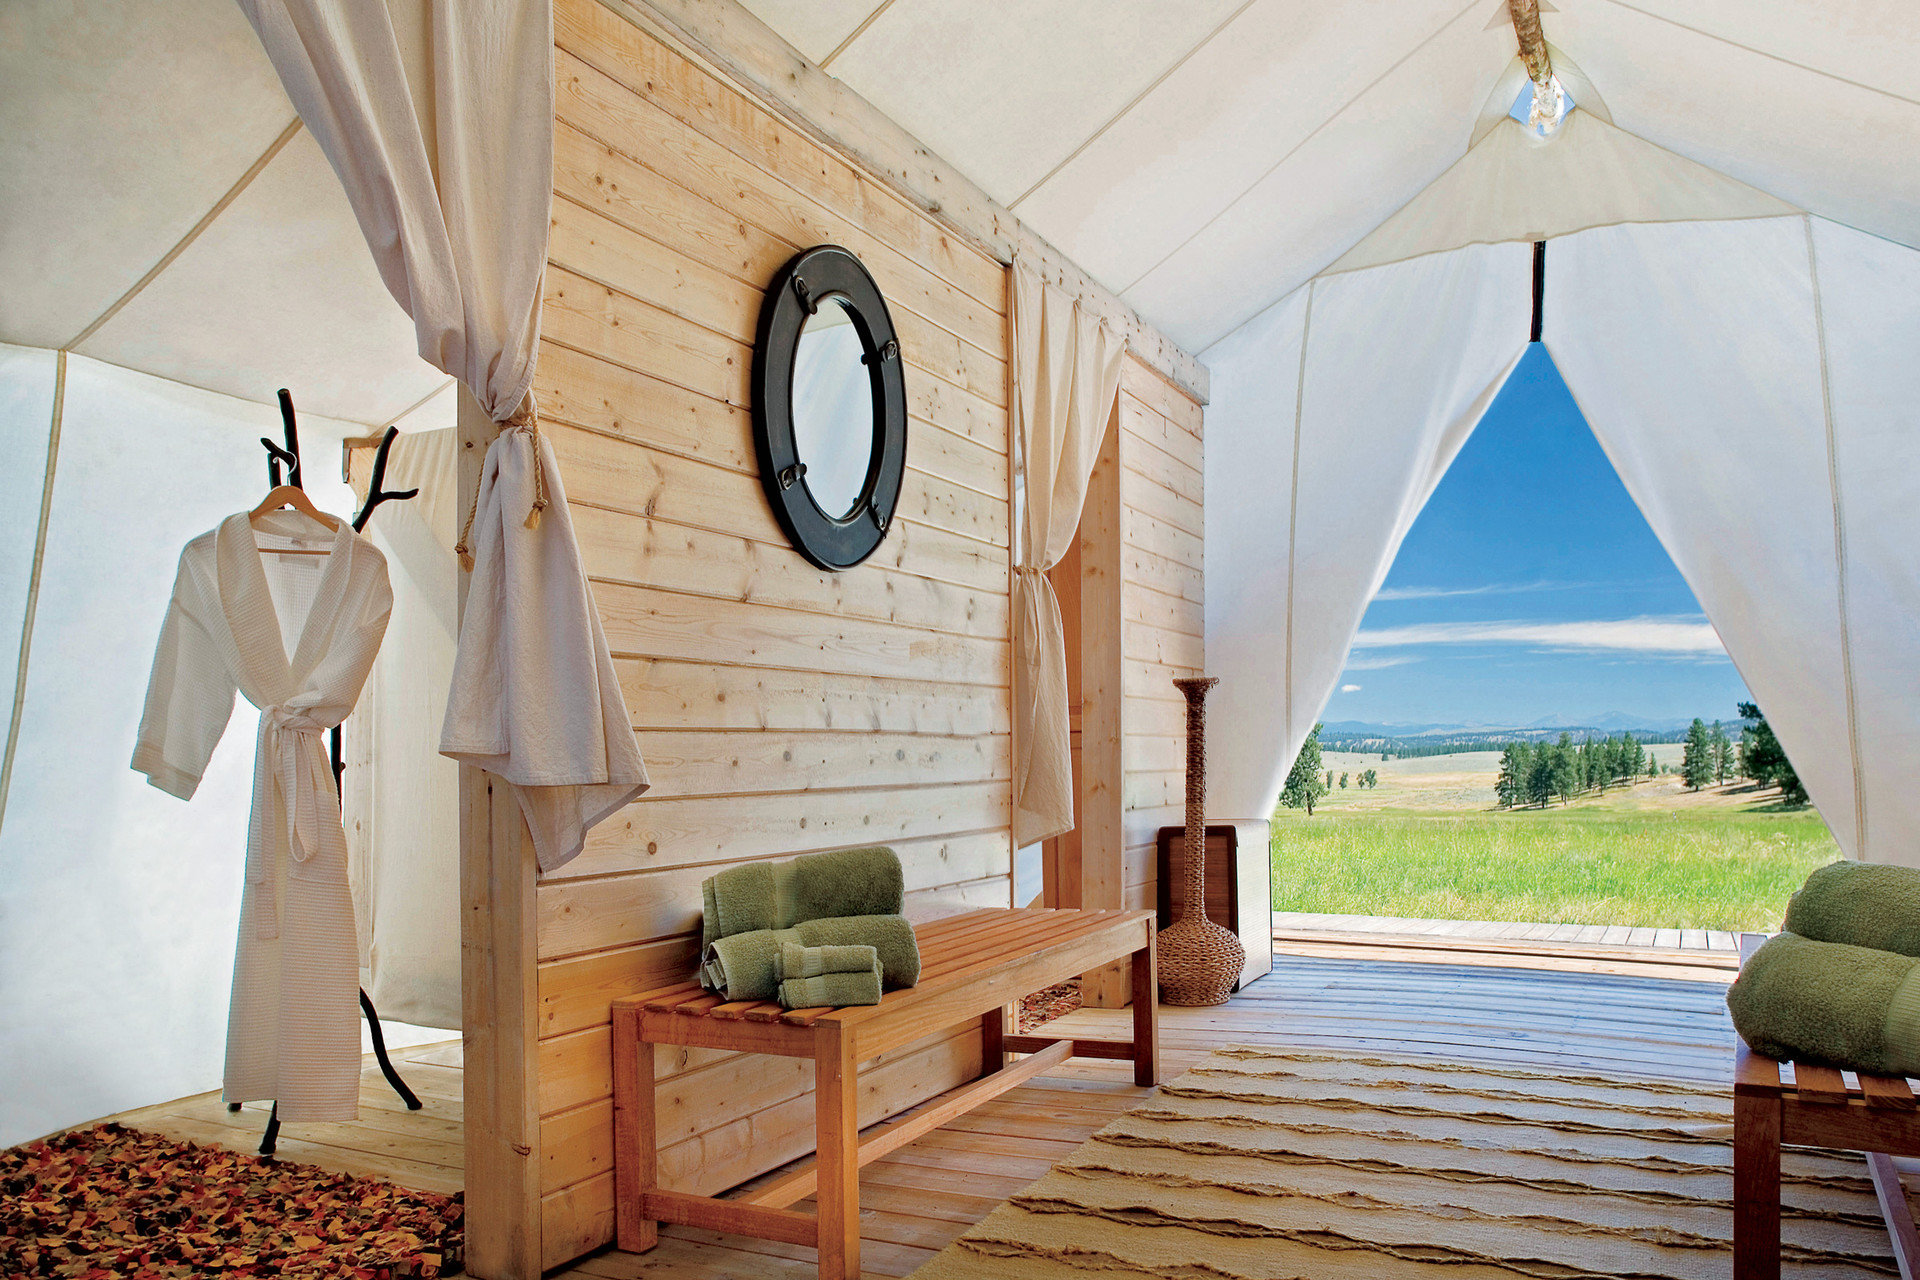 Glamping Luxury Travel Outdoors + Adventure Trip Ideas Weekend Getaways house Architecture home cottage farmhouse Villa arch